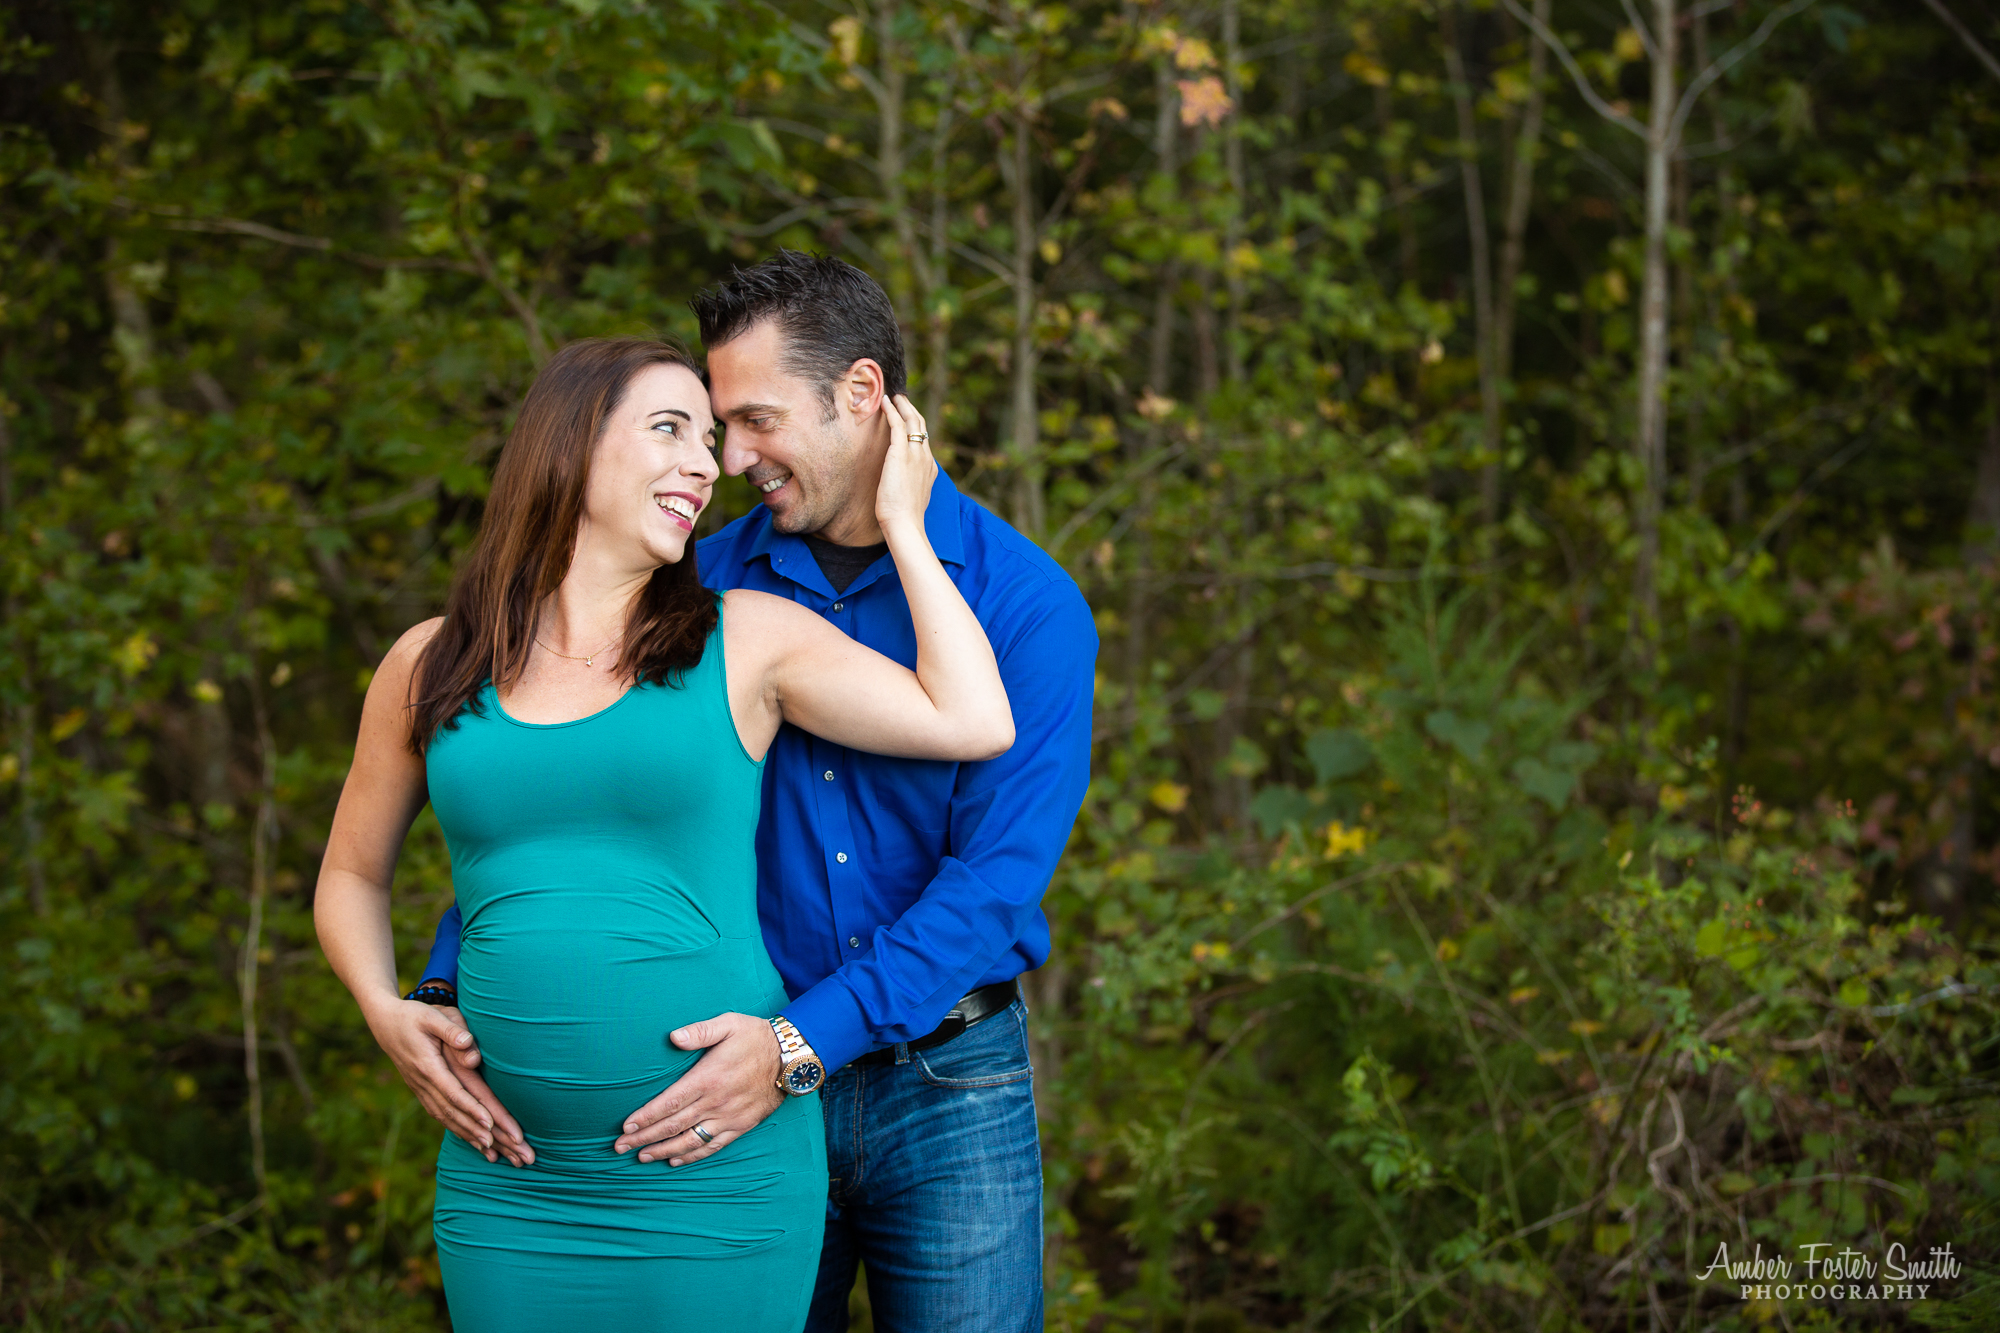 Pregnant woman and man holding each other